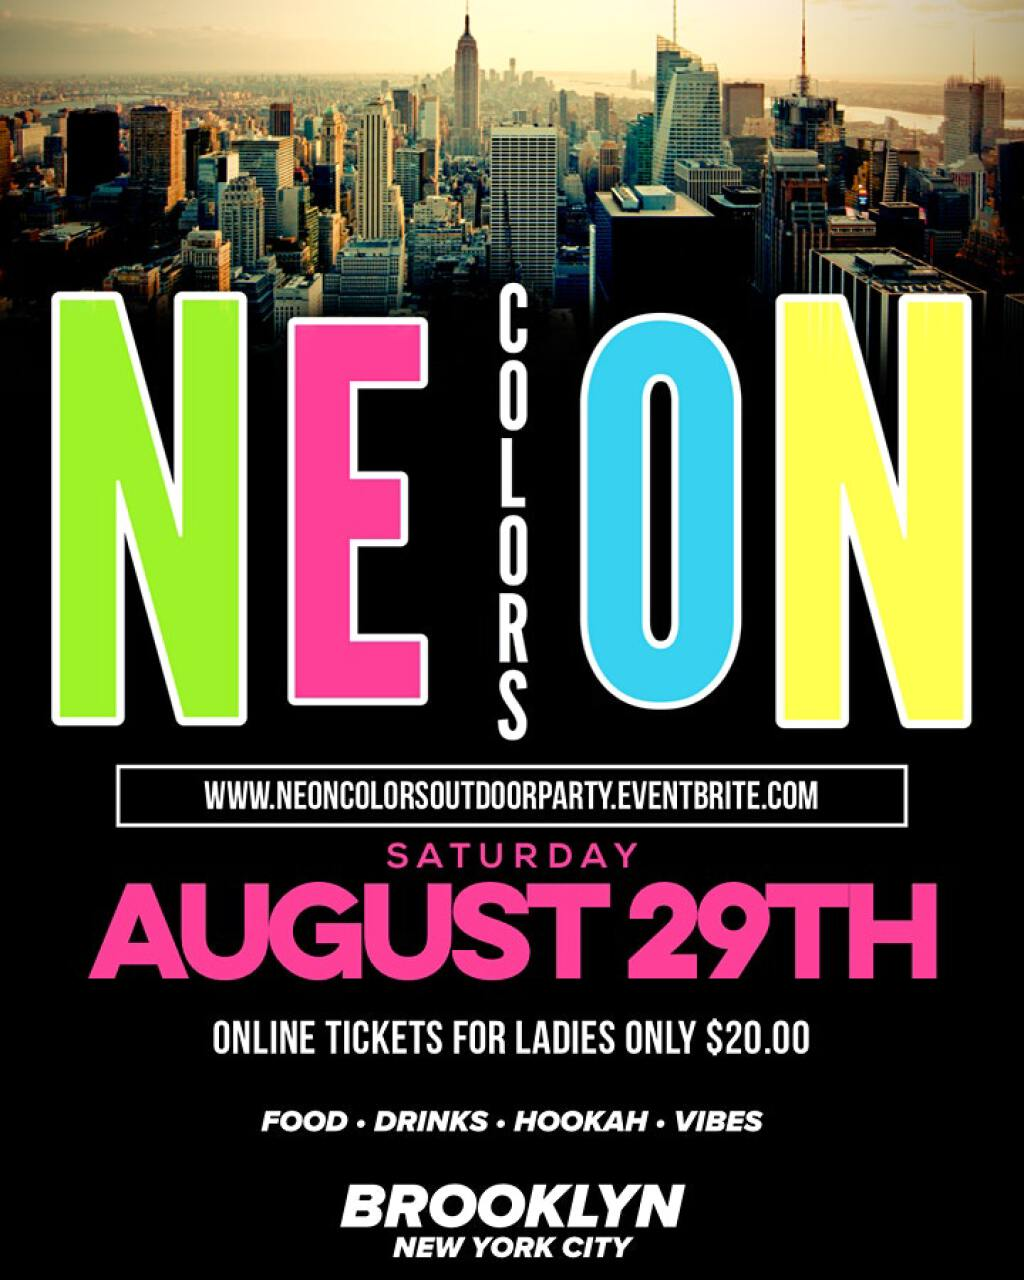 Neon Colors flyer or graphic.